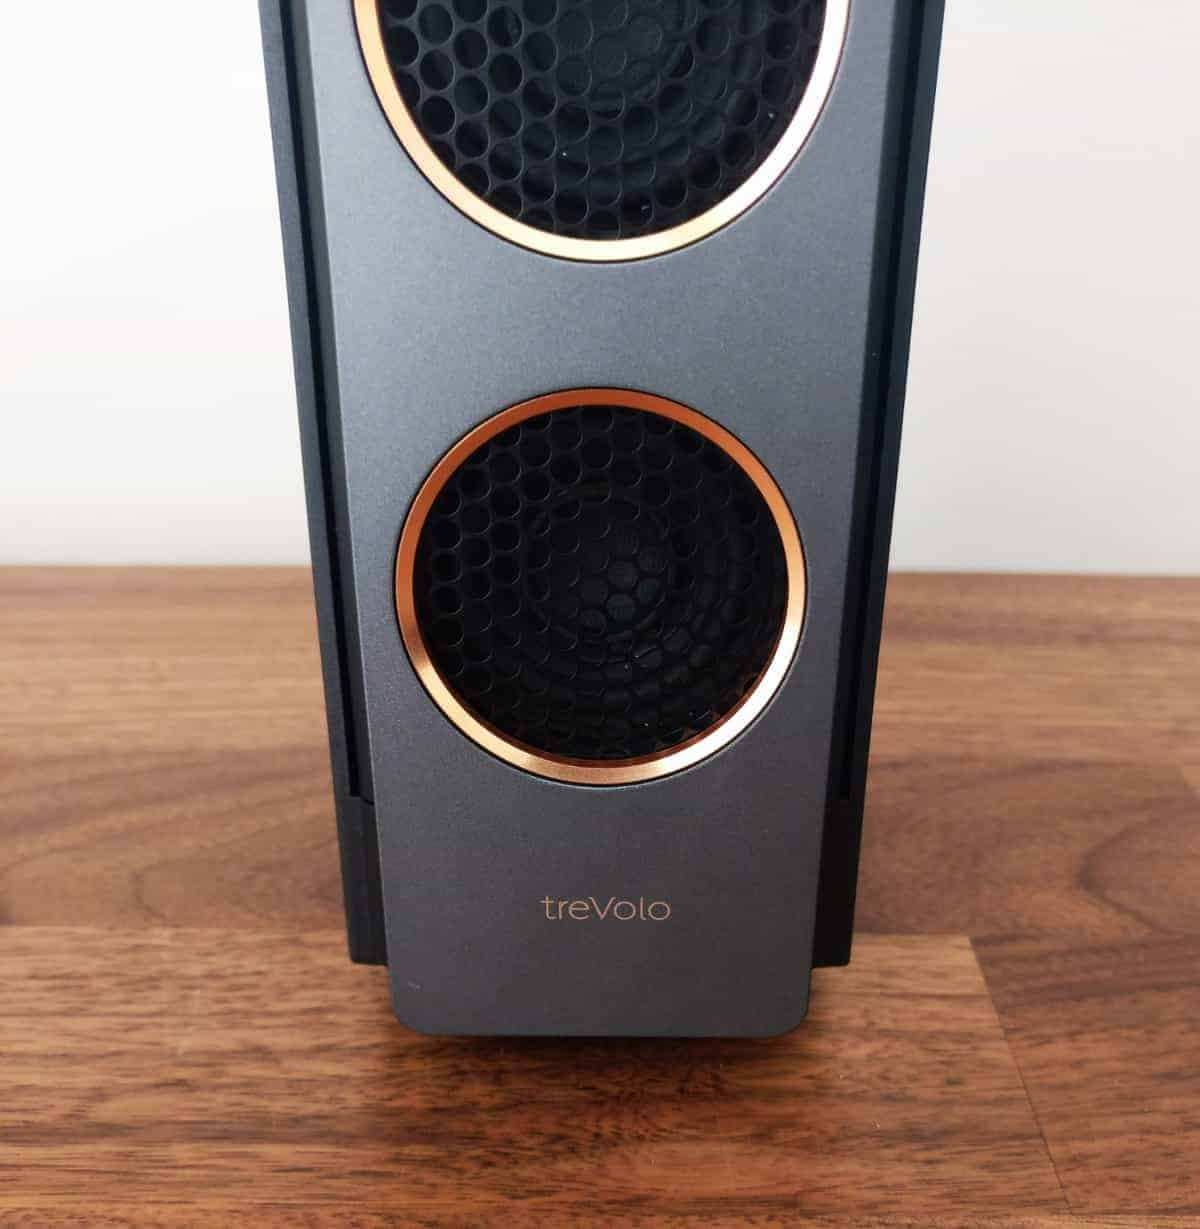 benq-trevolo-s-photos26 BenQ treVolo S Bluetooth Portable Speaker Review